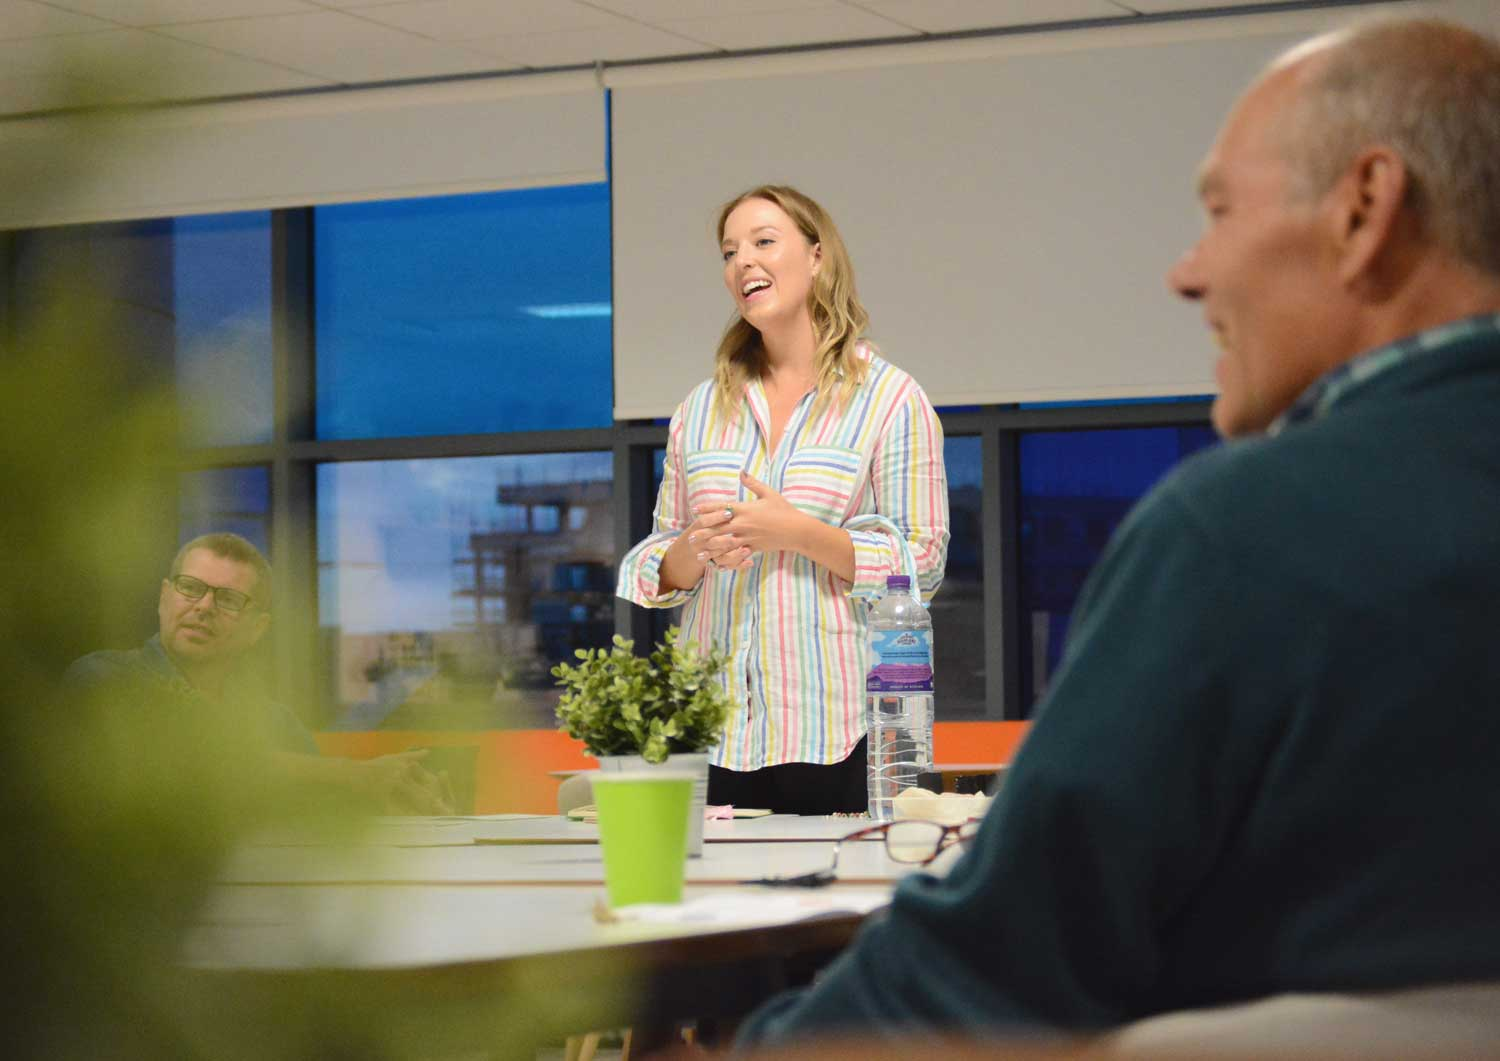 culture consultant Lizzie Benton stands up in front of people to deliver a company culture workshop.